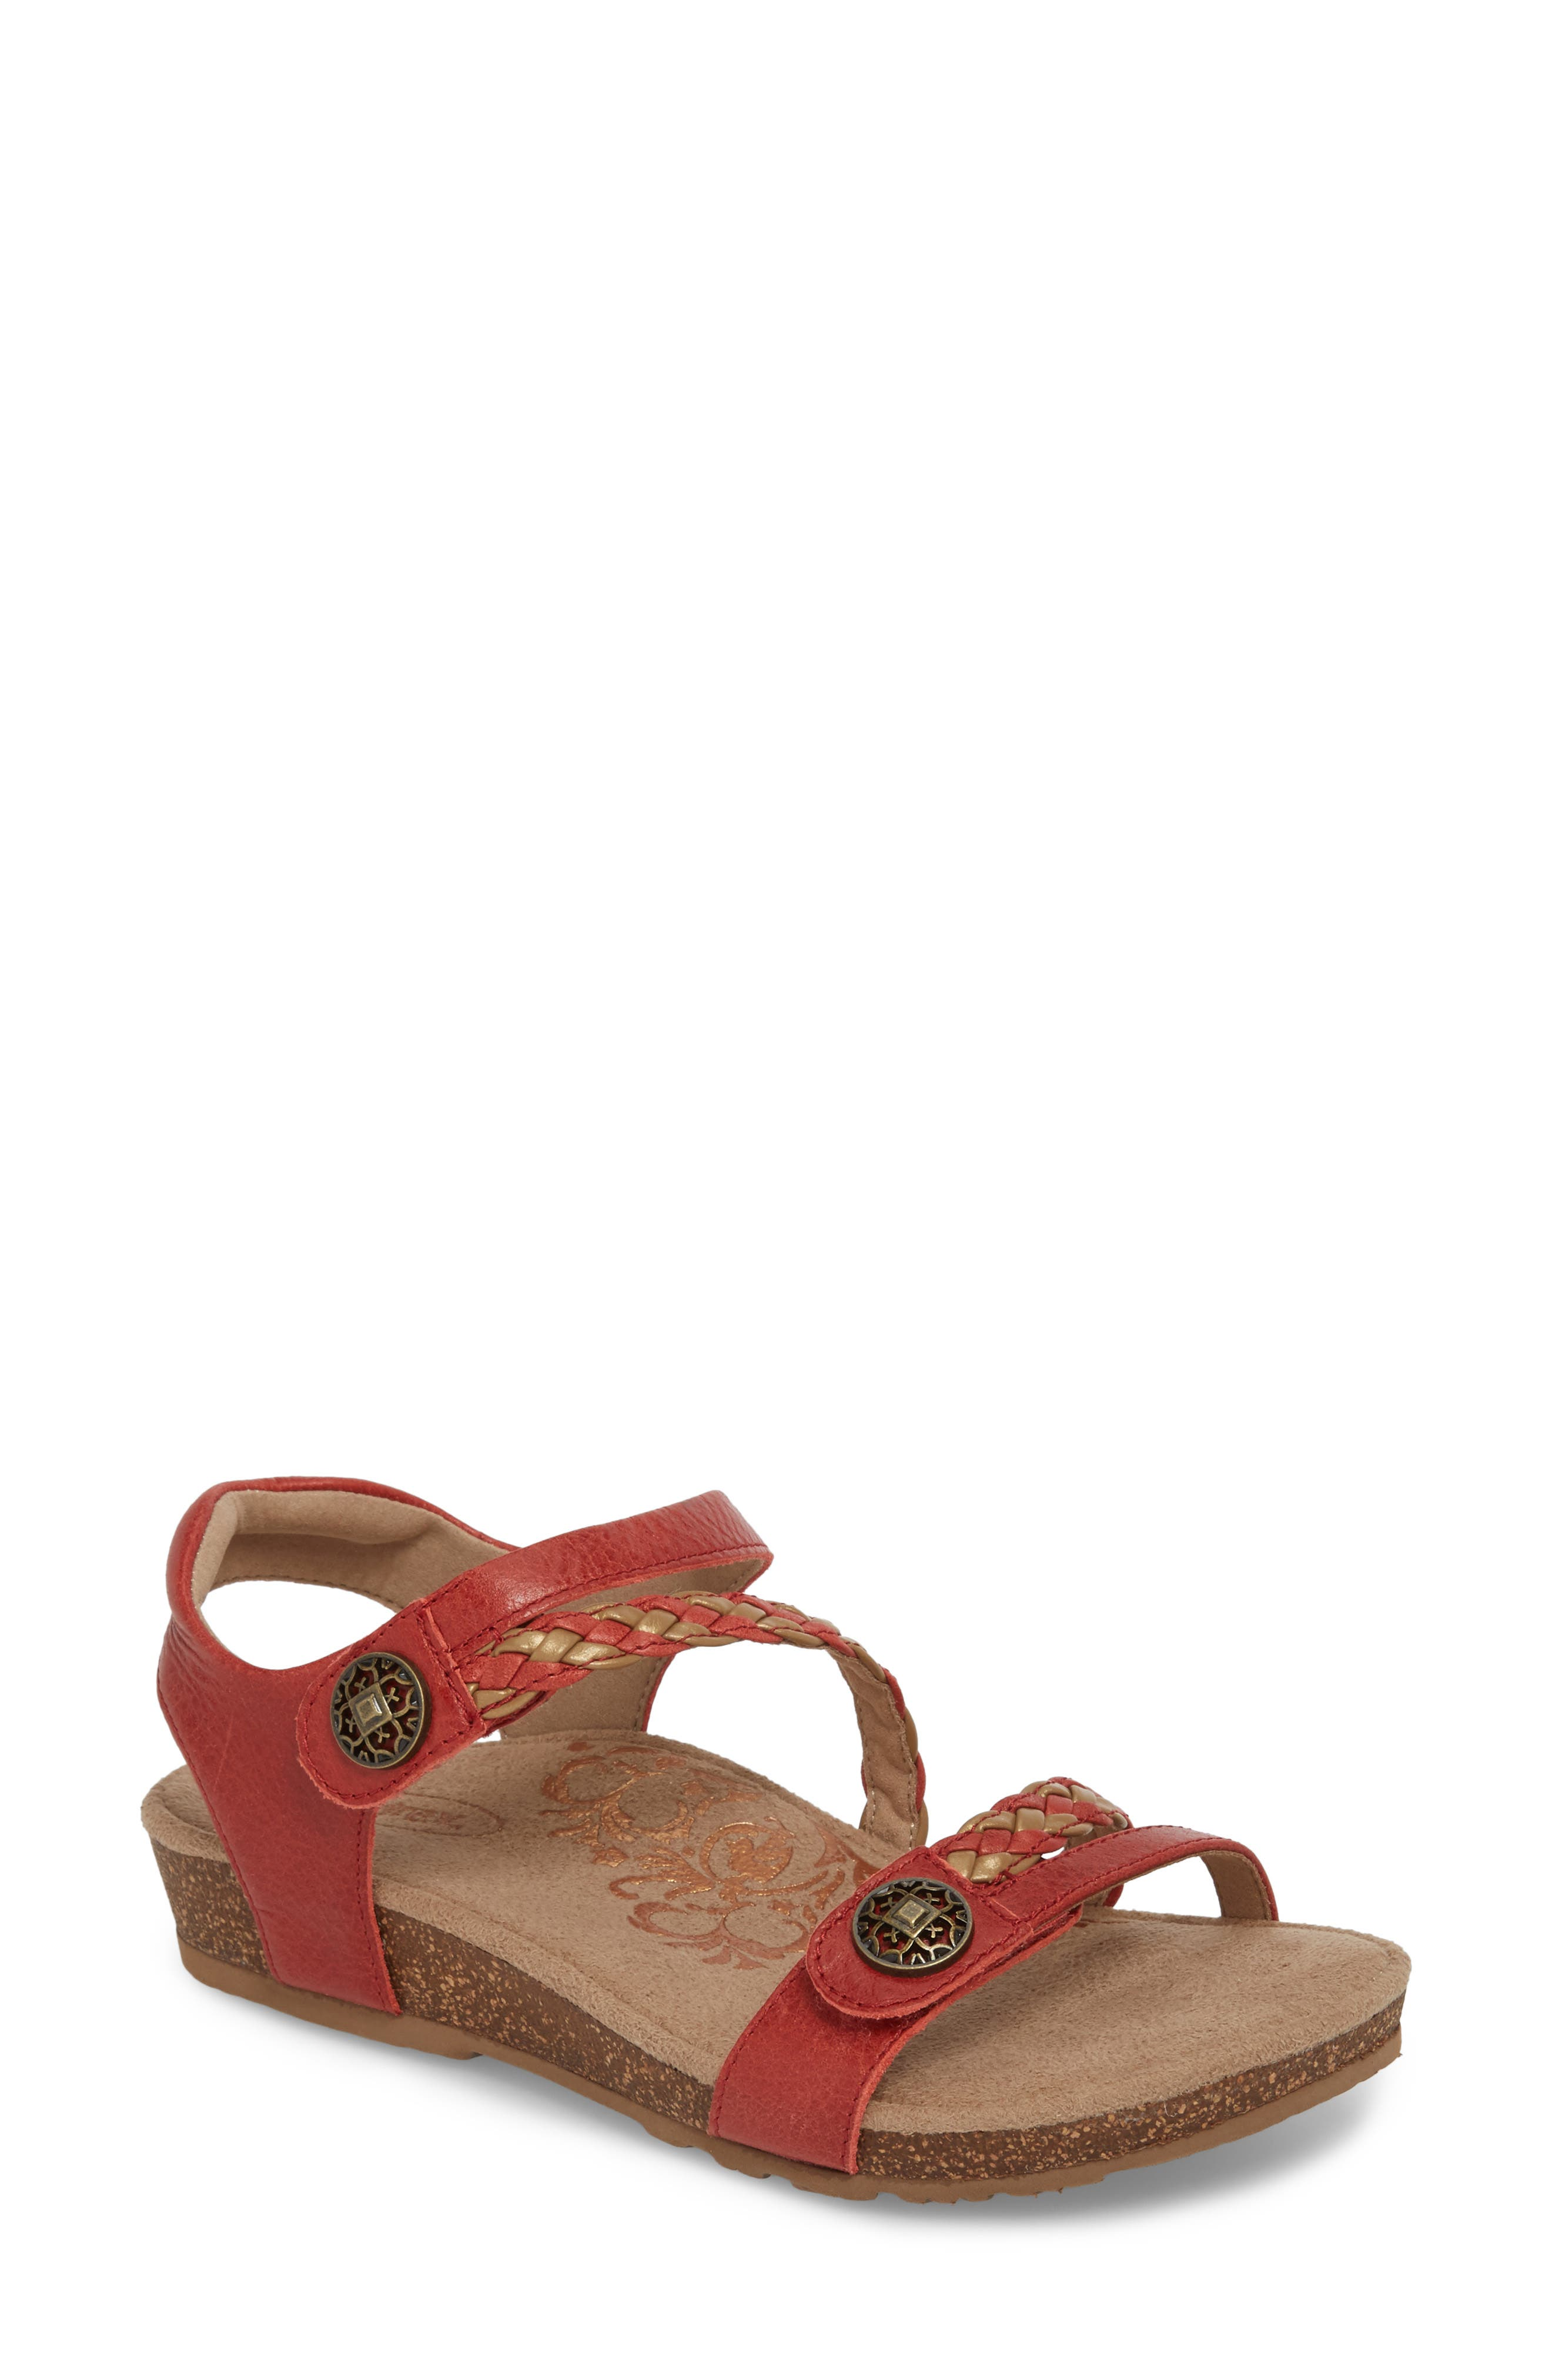 'Jillian' Braided Leather Strap Sandal,                             Main thumbnail 1, color,                             Coral Leather